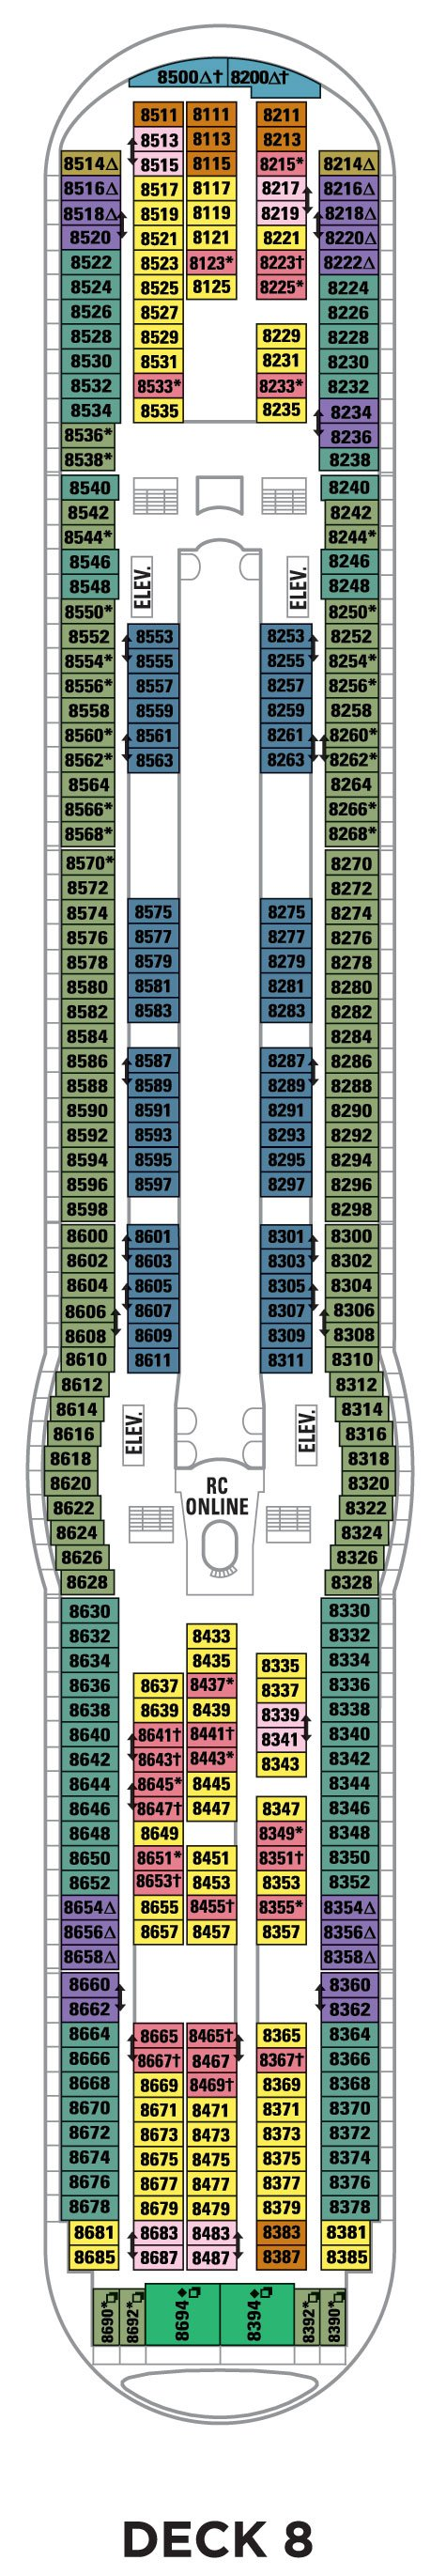 Deck 8 Explorer Of The Seas Deck Plans Royal Caribbean